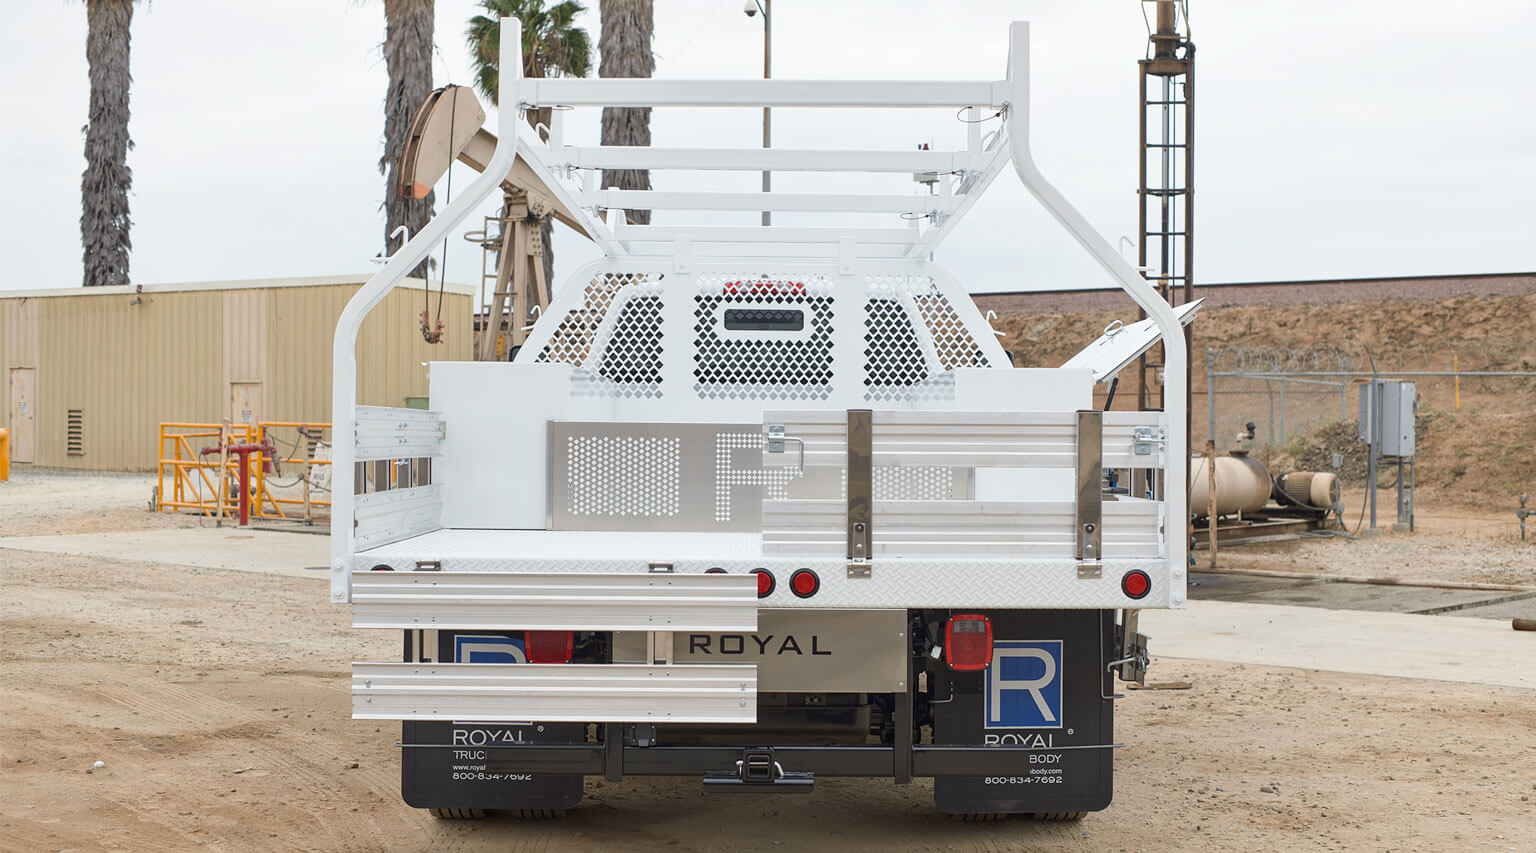 12 foot severe duty number 2 contractor body by Royal Truck Body